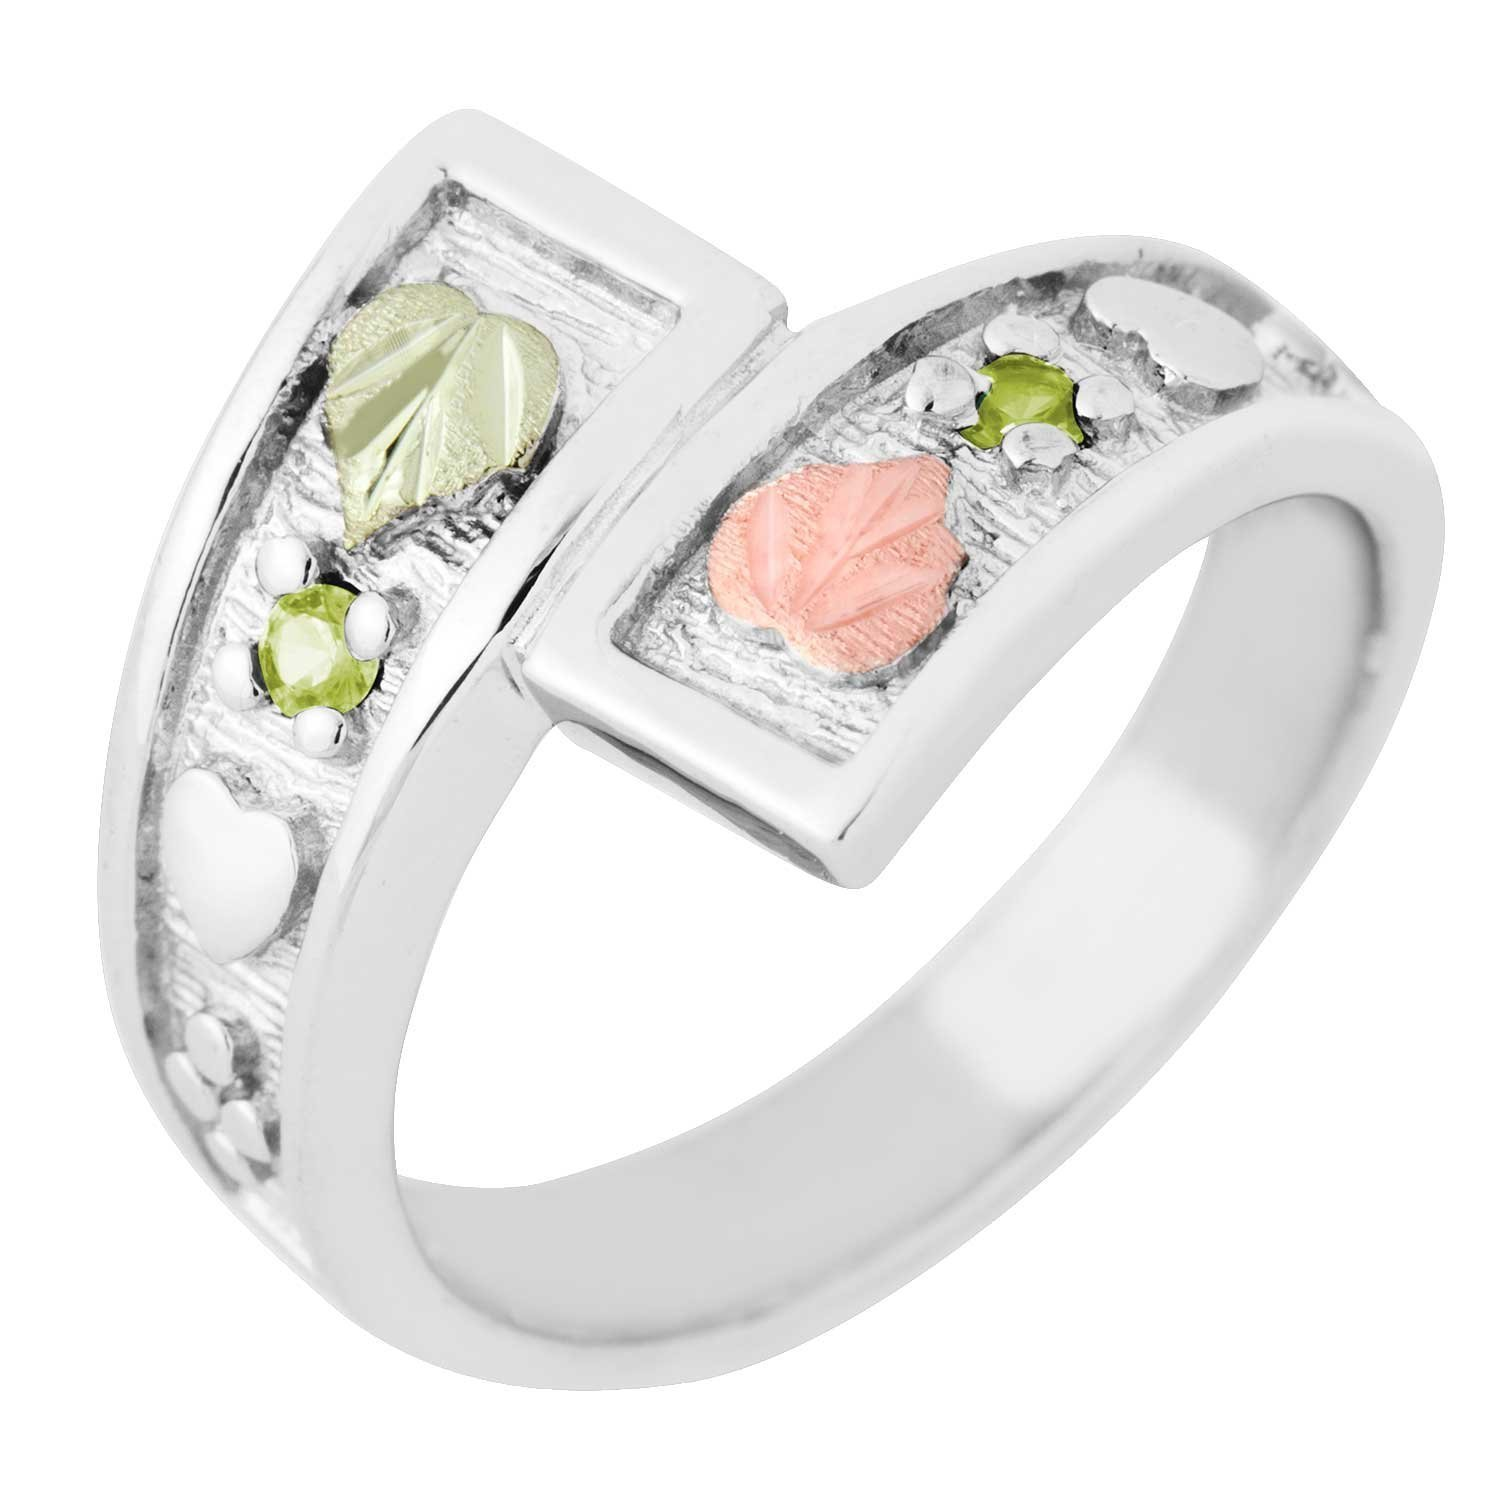 August Birthstone Created Soude Peridot Bypass Ring, Sterling Silver, 12k Green and Rose Gold Black Hills Silver Motif, Size 6.5